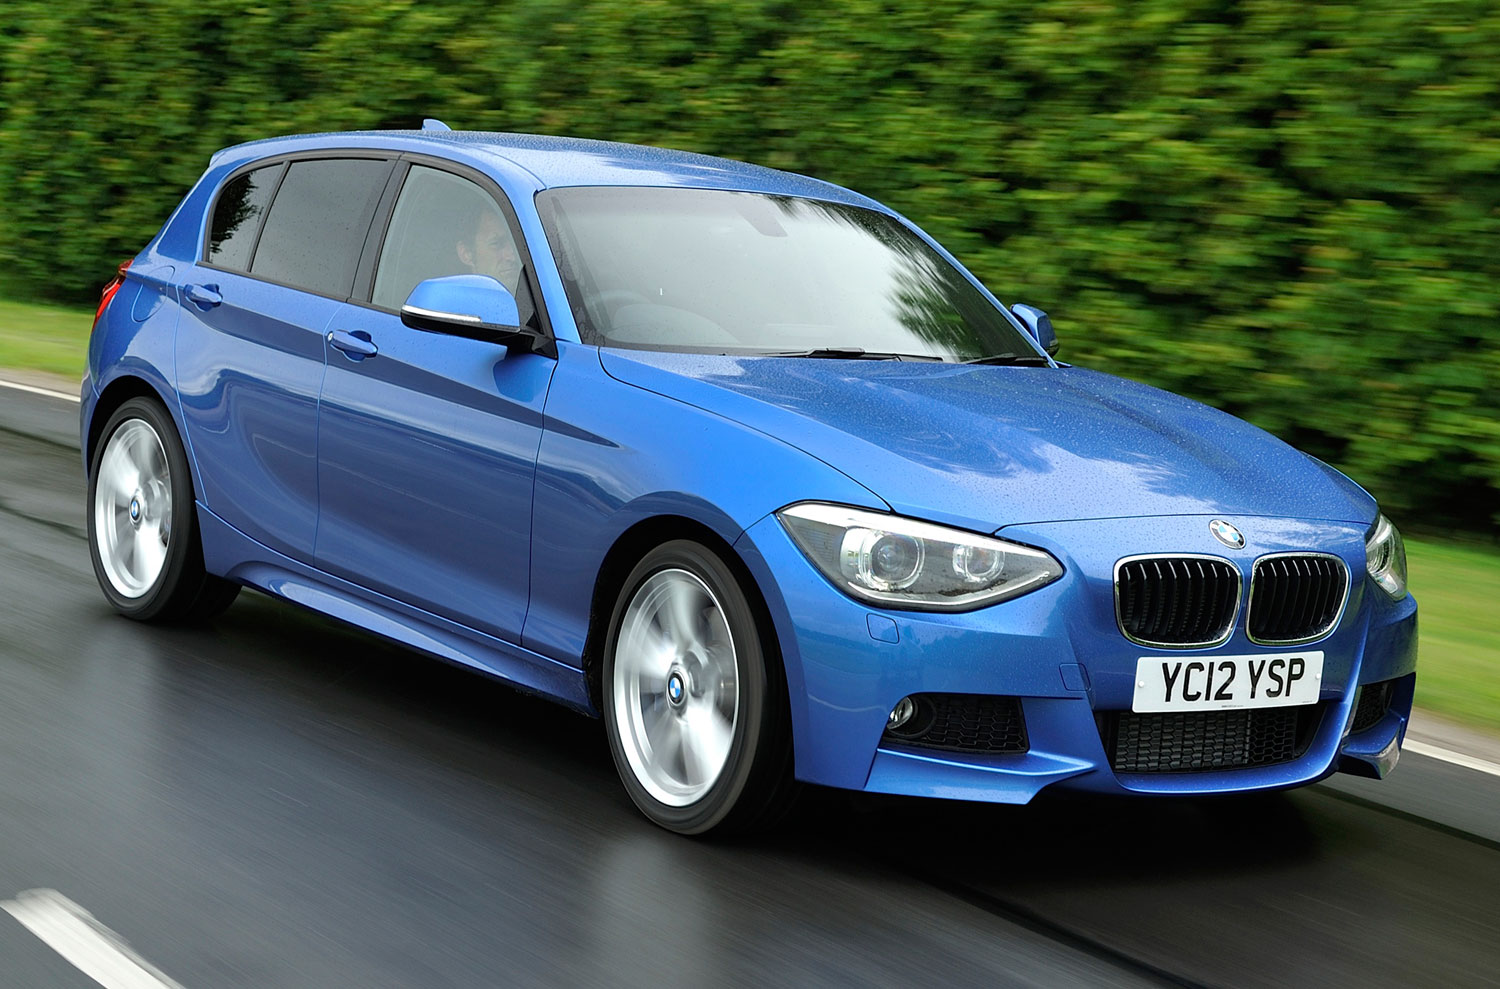 spied f20 bmw 1 series in malaysia 125i m sport image 195866. Black Bedroom Furniture Sets. Home Design Ideas